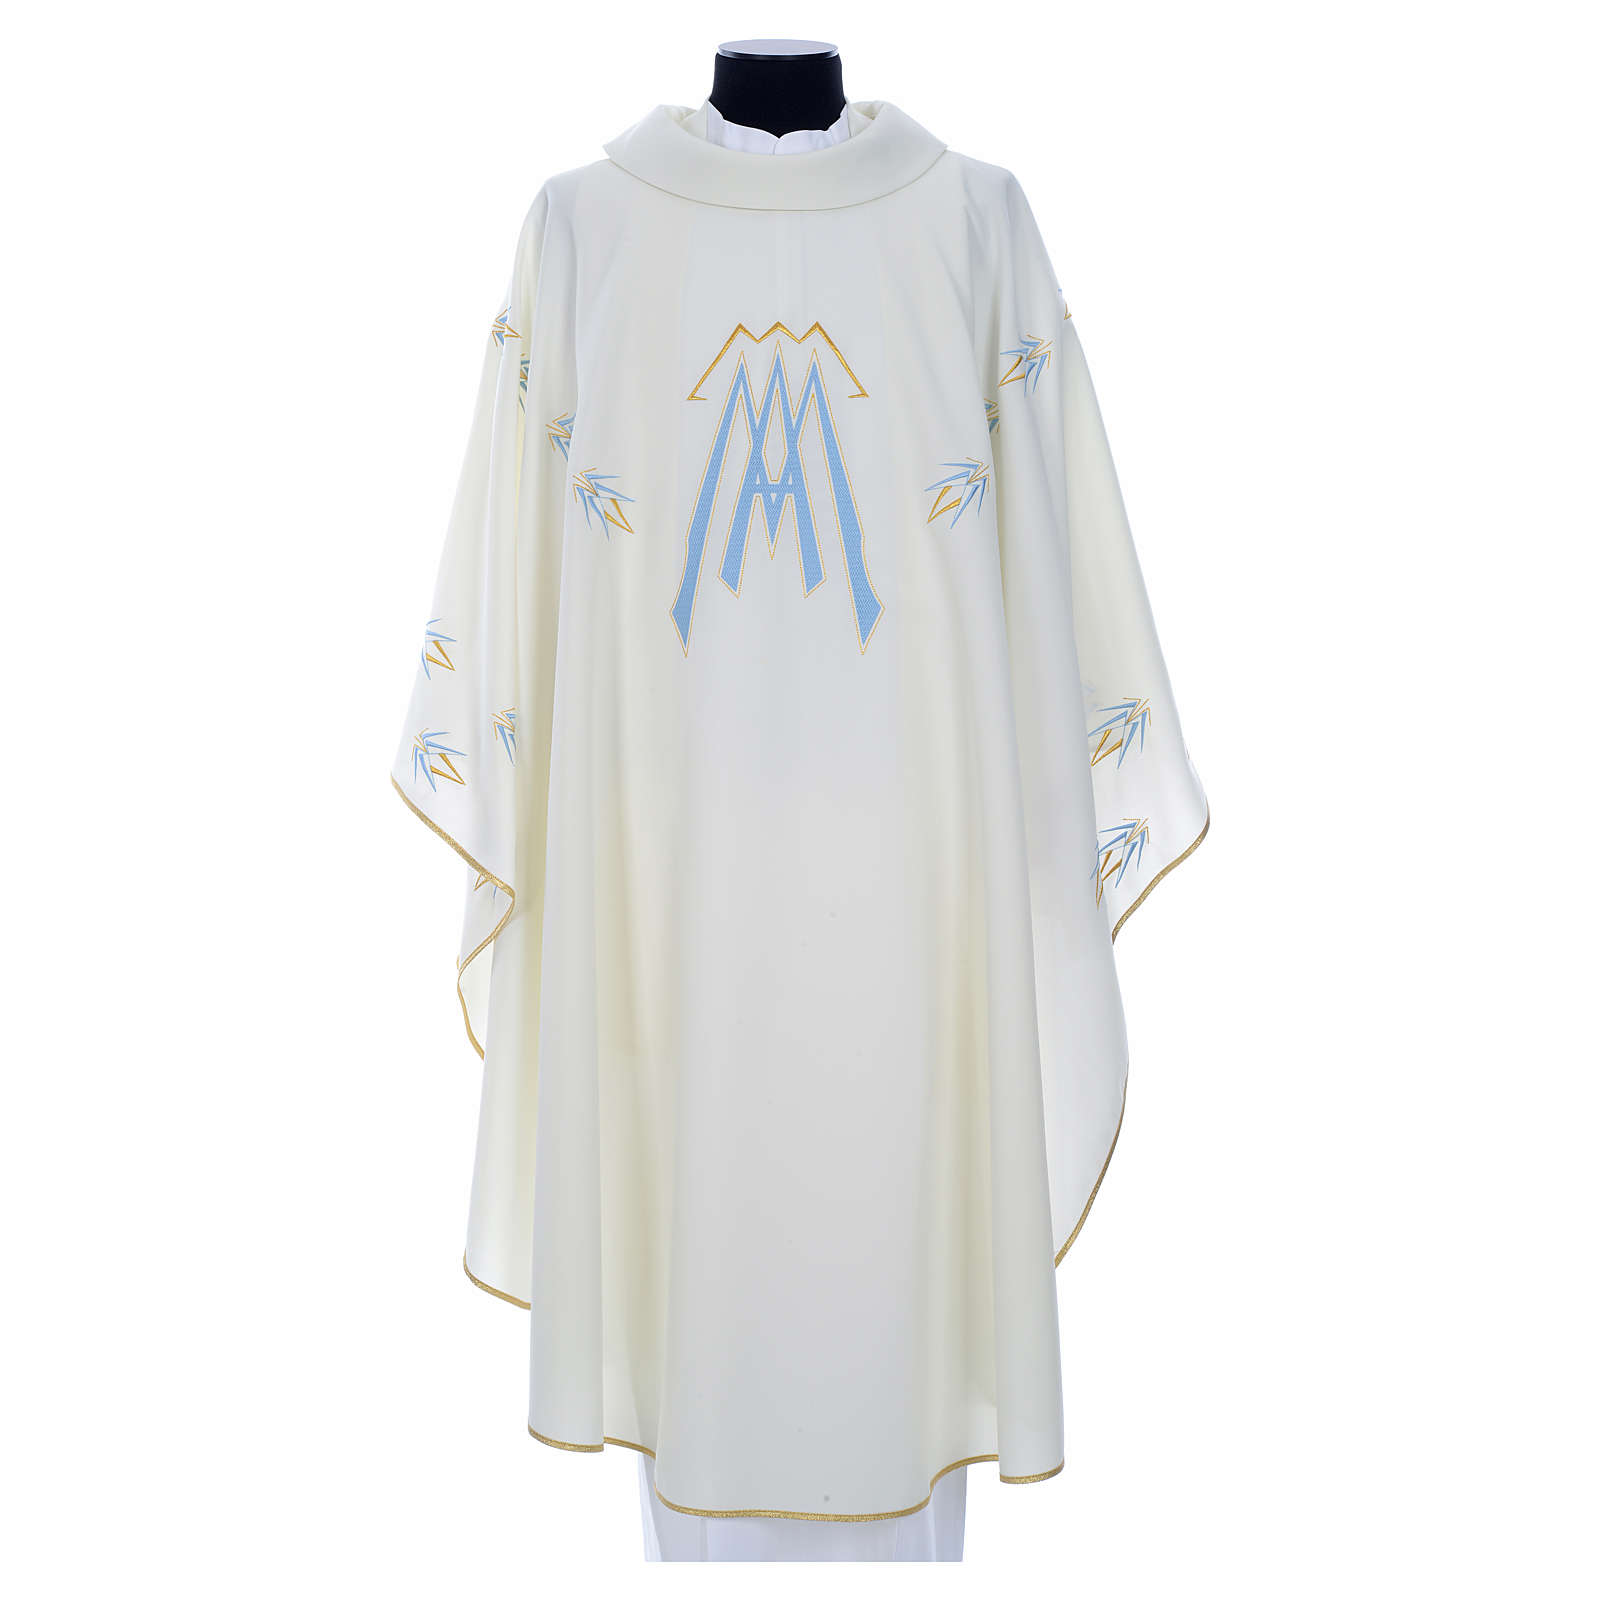 Catholic Chasuble in polyester with Marian symbol embroidery 4